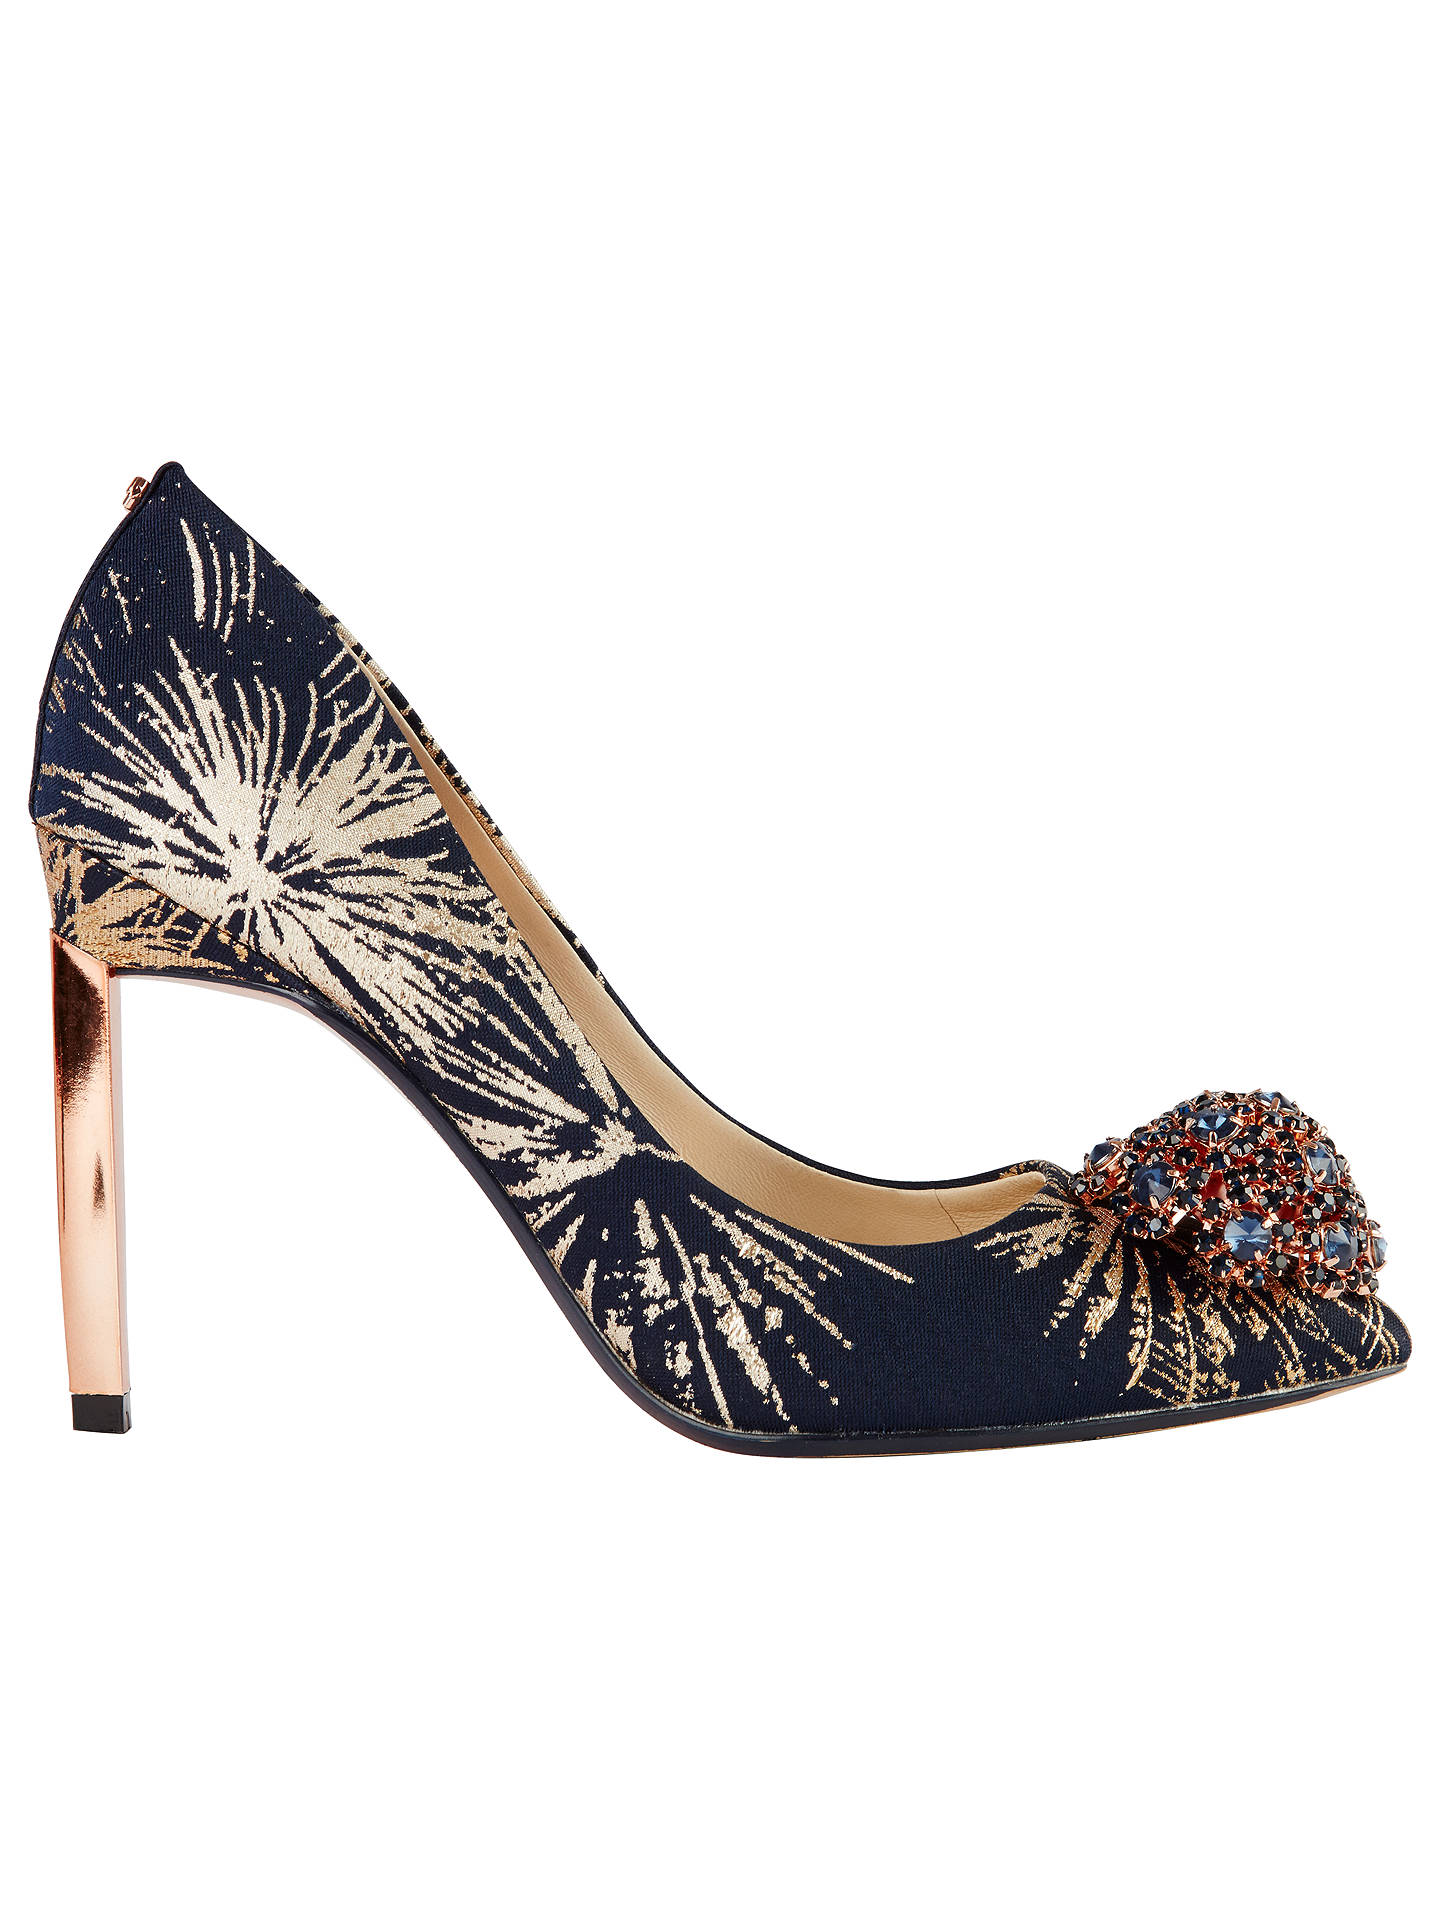 8871ca0de958b0 ... Buy Ted Baker Peetch Stardust Court Shoes